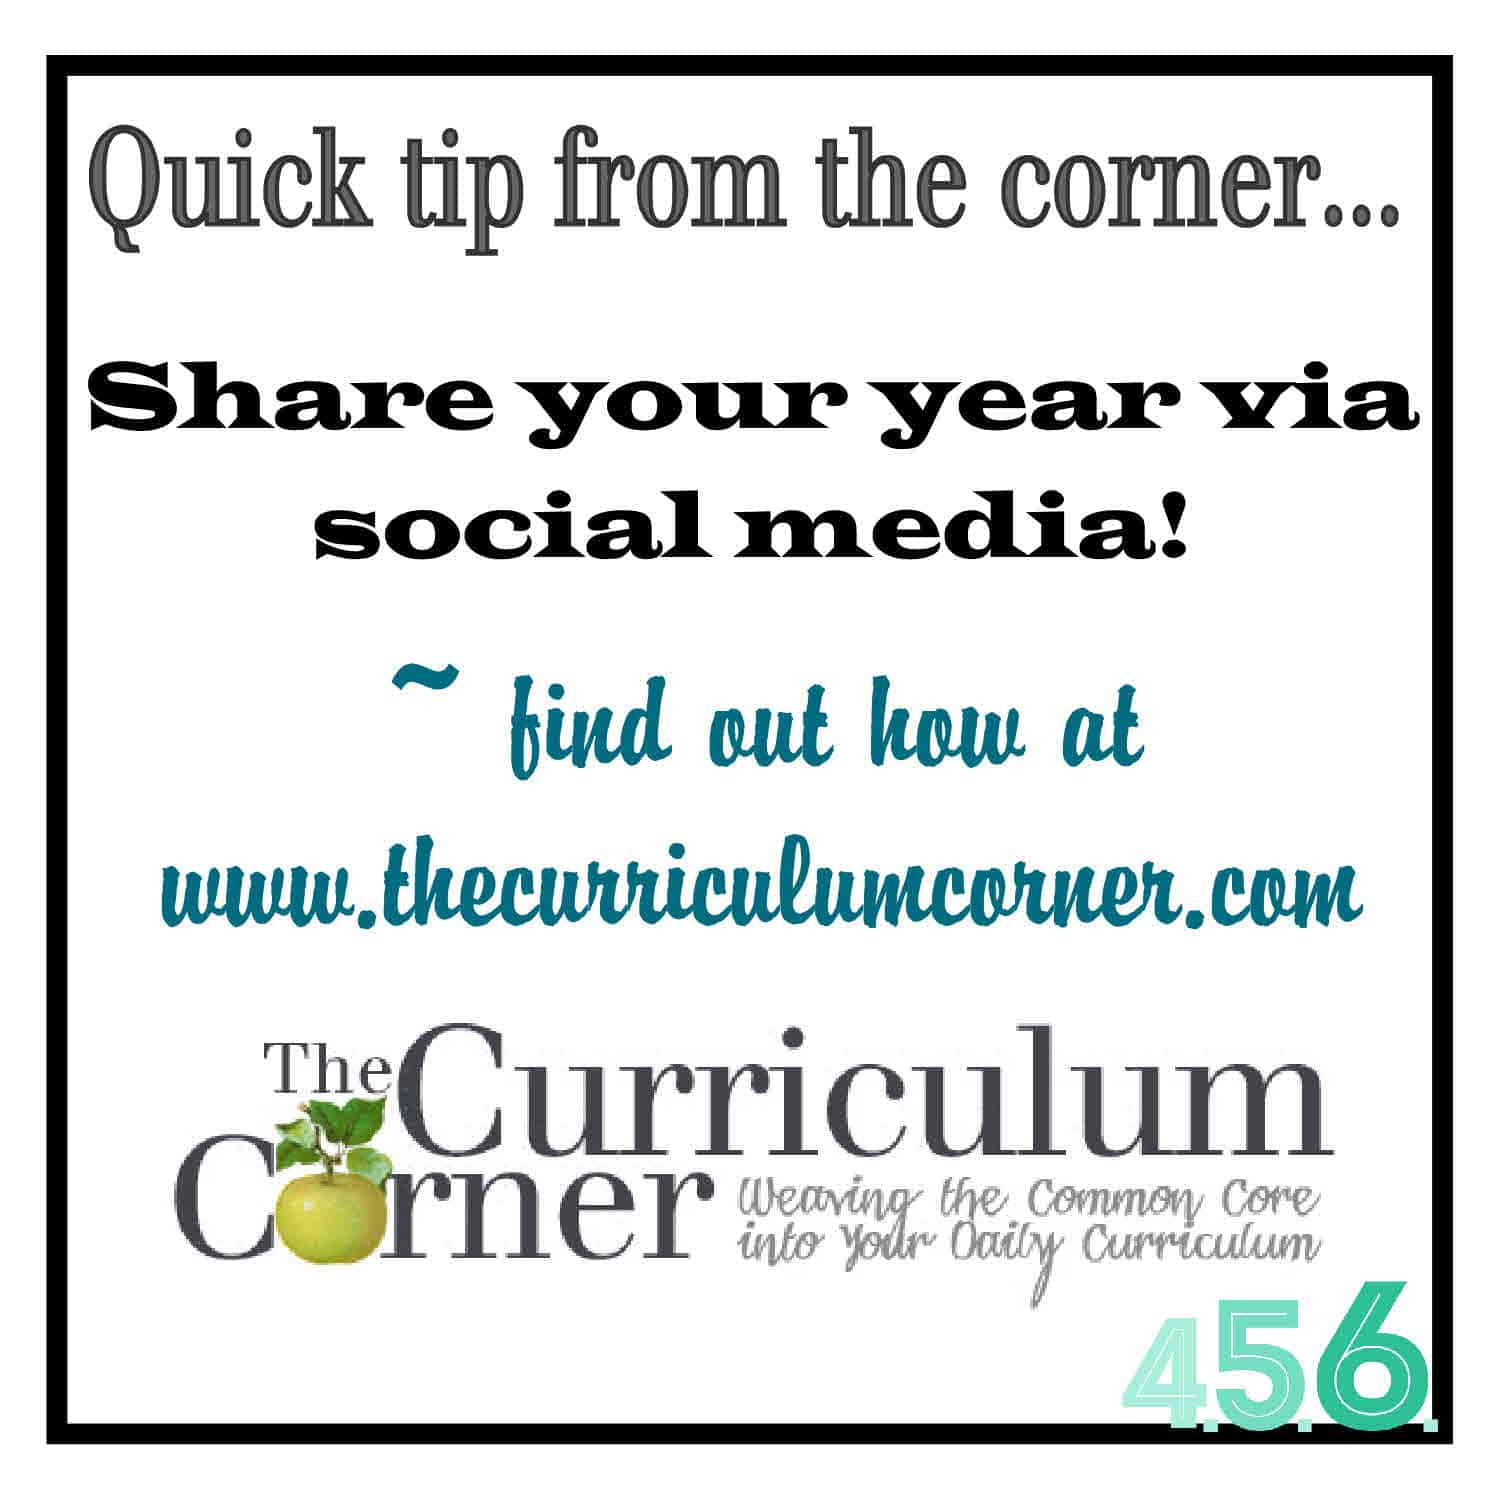 Quick Tip – Share Your Year via Social Media!